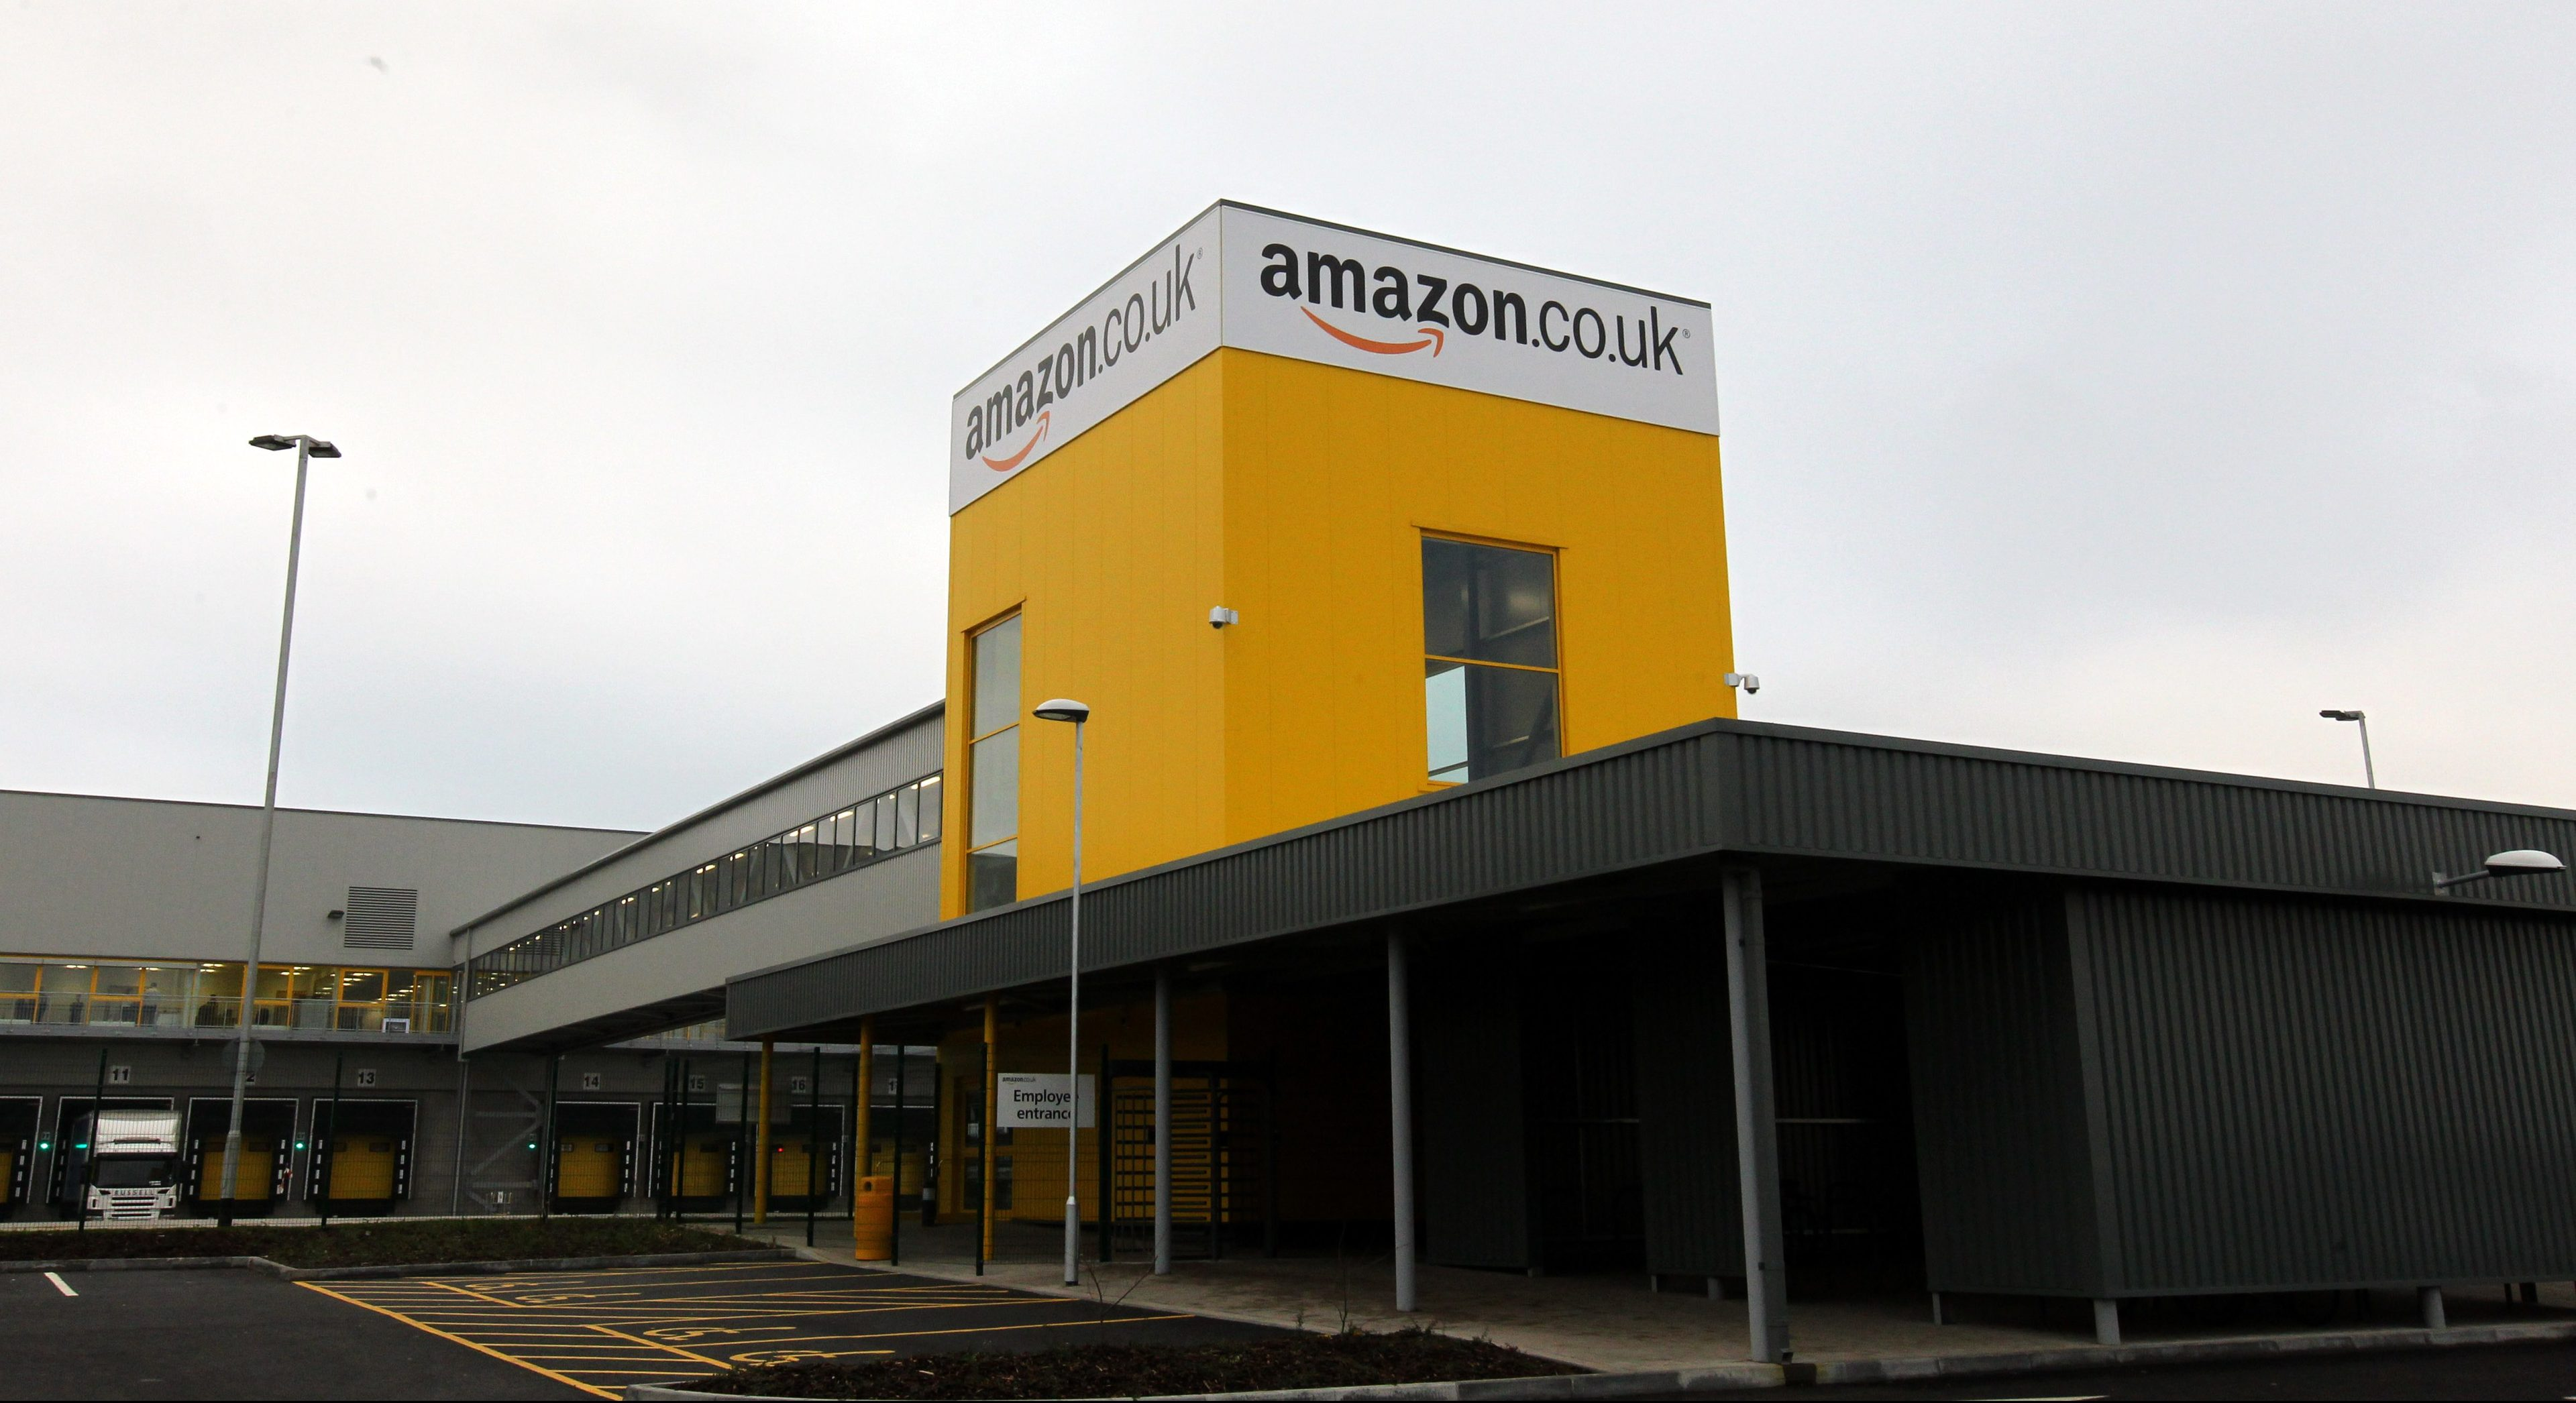 Amazon's fulfilment centre in Dunfermline.